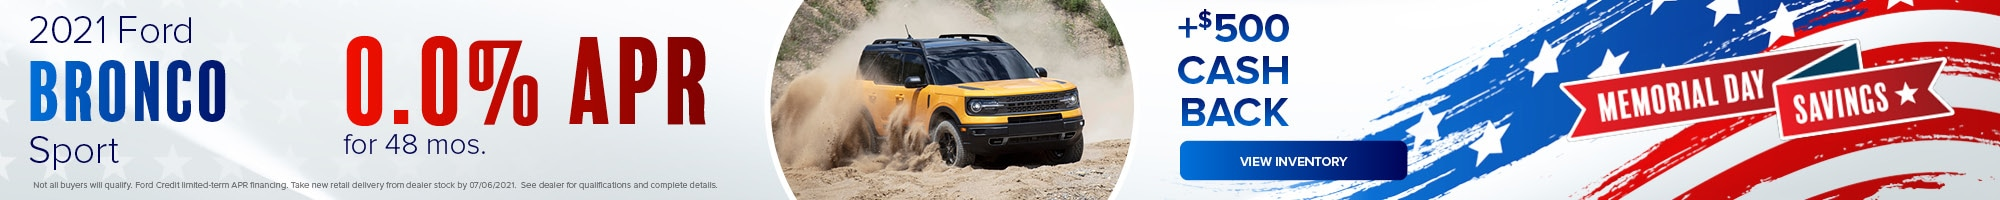 2021 Ford Bronco Sport - May 2021